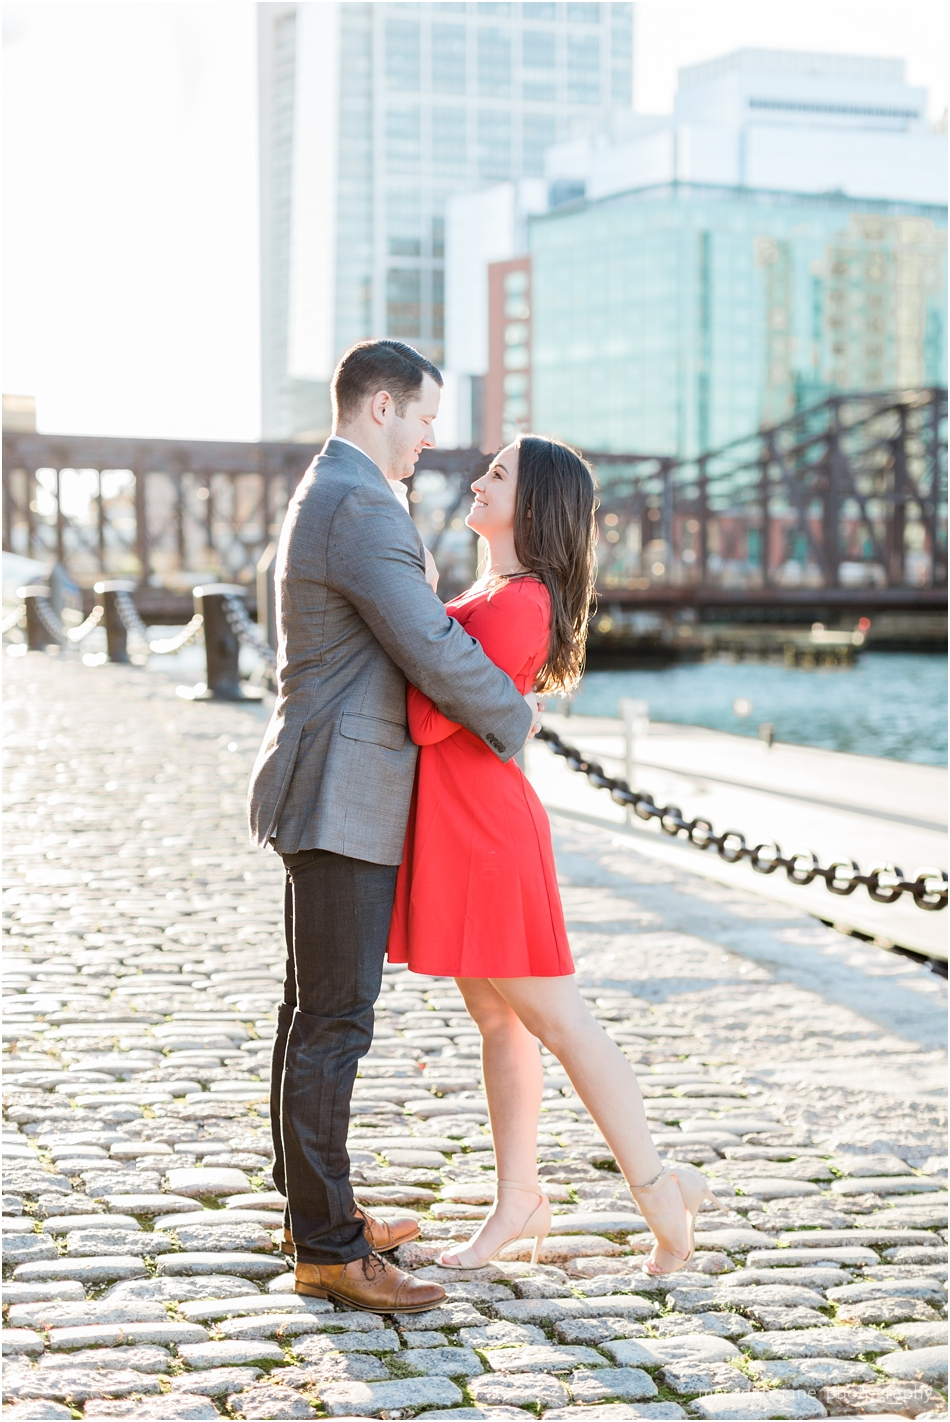 seaport_boston_massachusetts_engagement_common_fall_foliage_cape_cod_wedding_photographer_Meredith_Jane_Photography_photo_0955.jpg